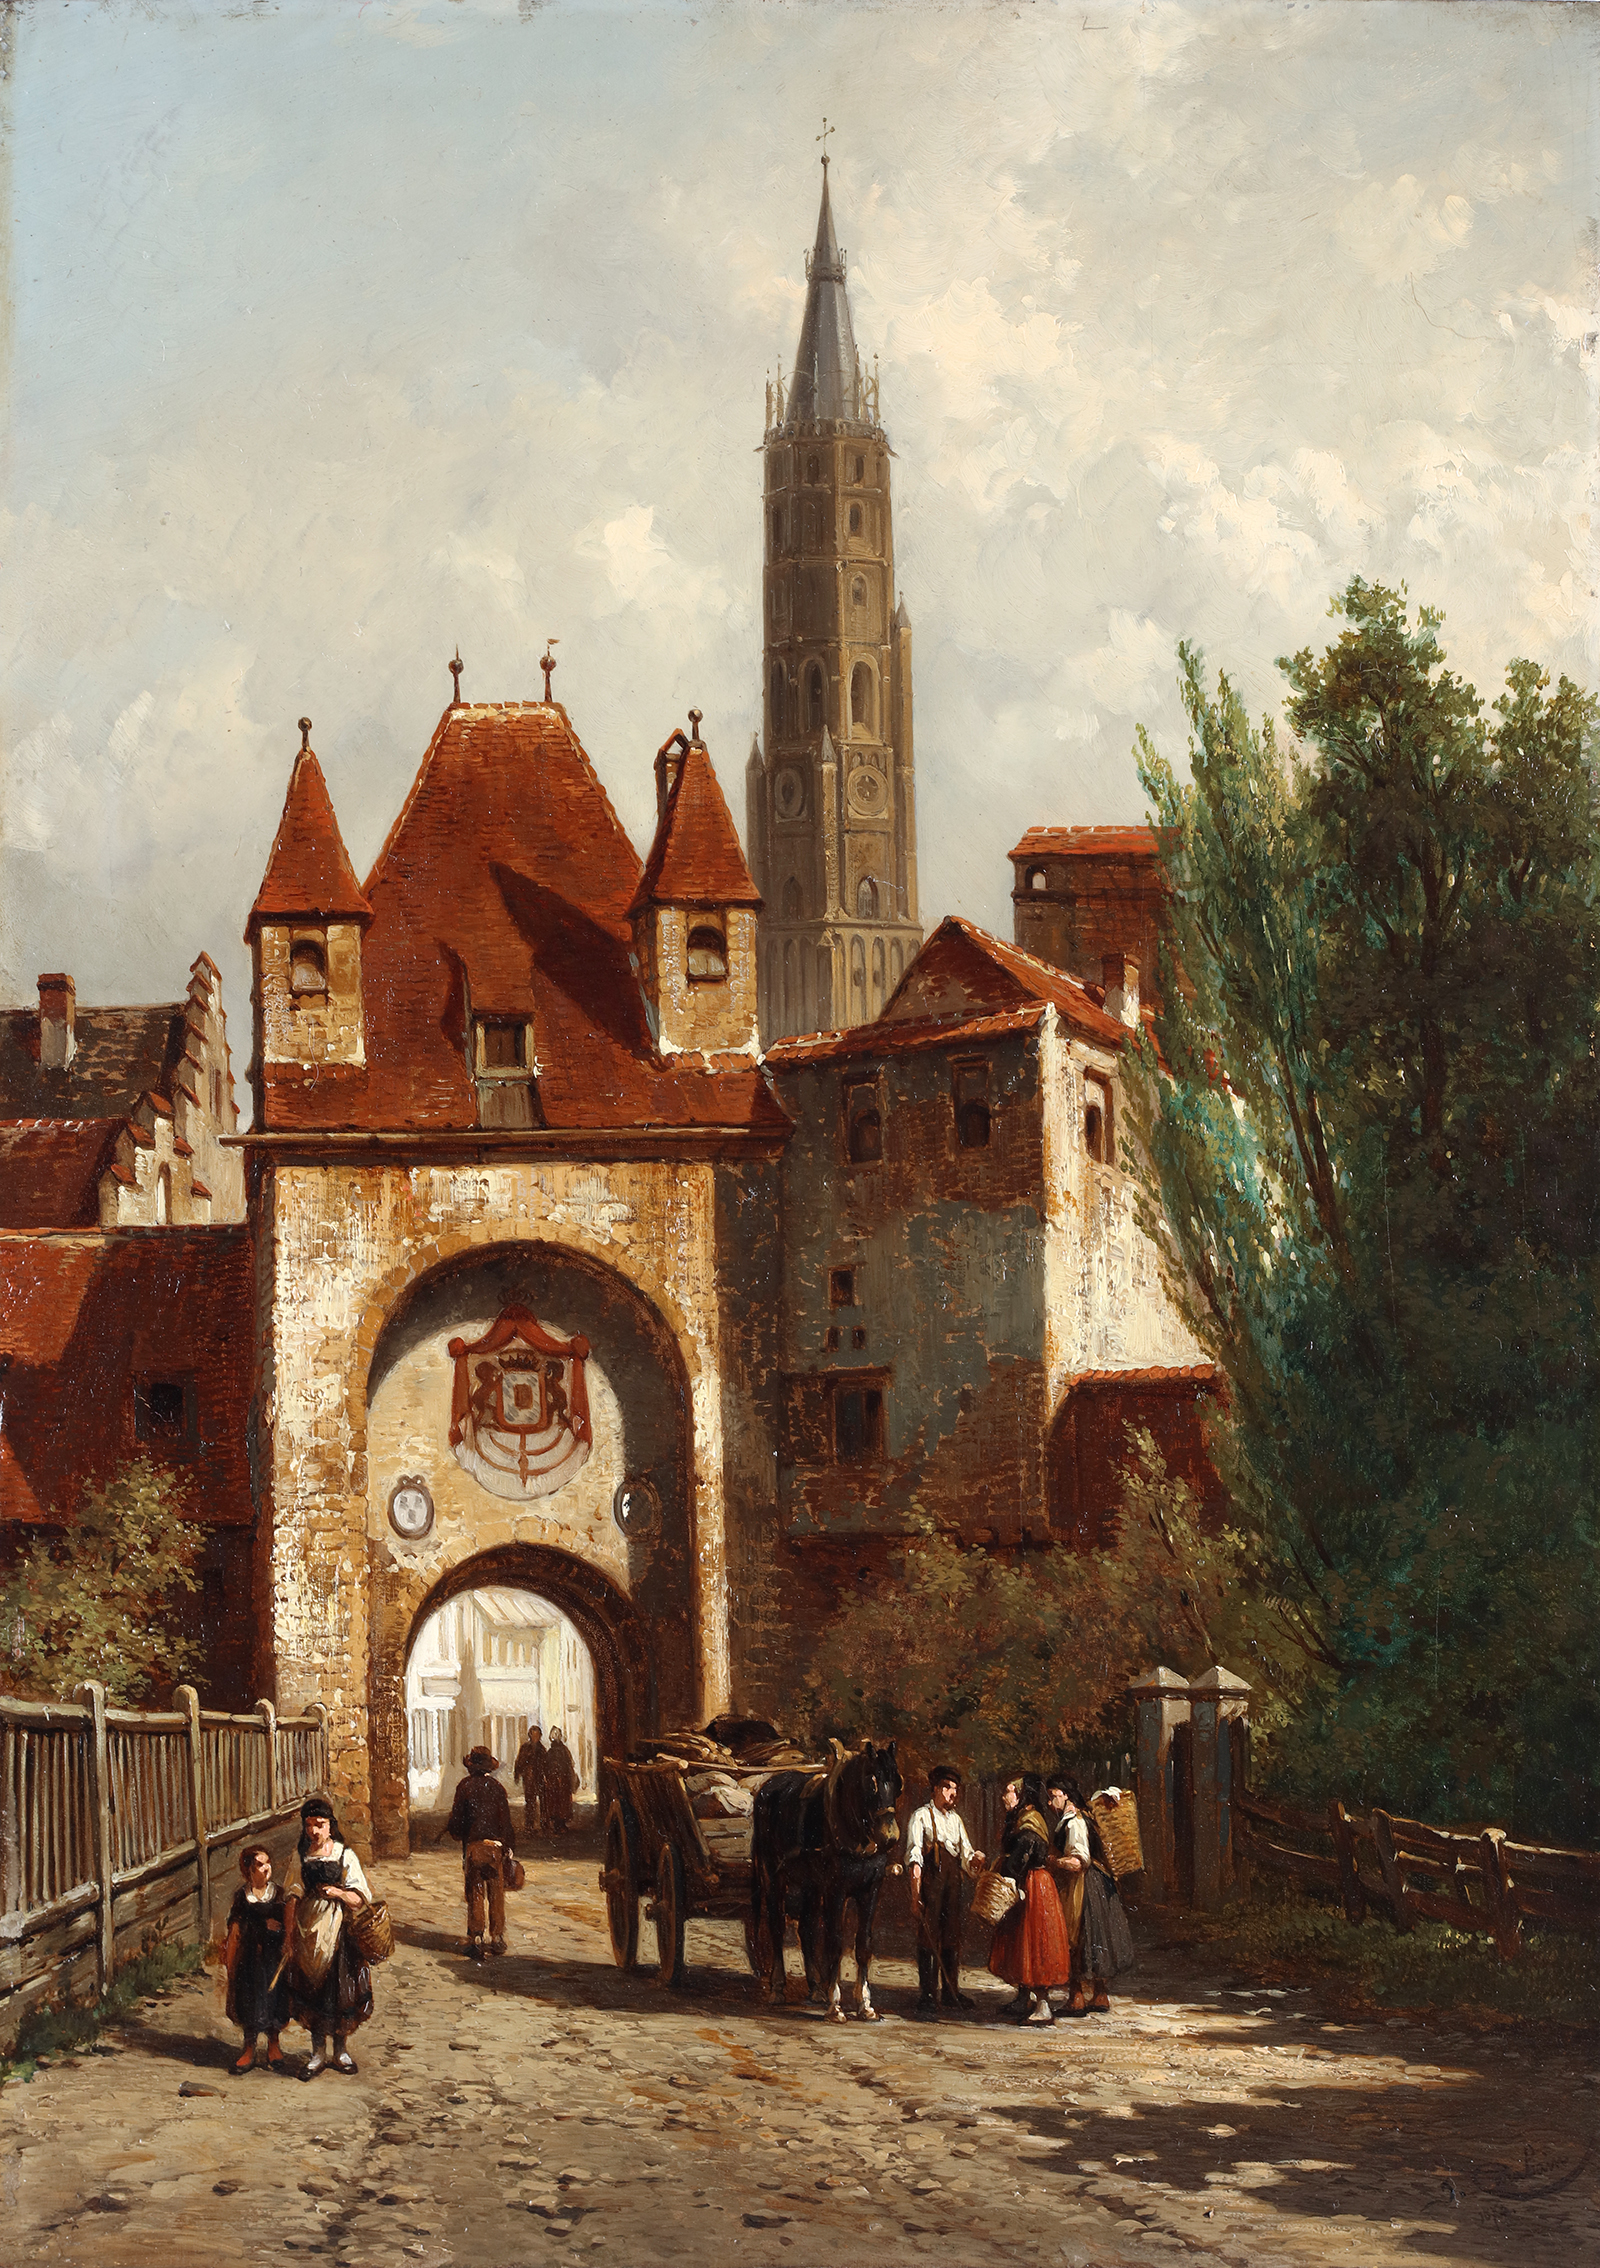 View of the Munich gate in Landshut with farmers, marketers and loaded horse, 1874